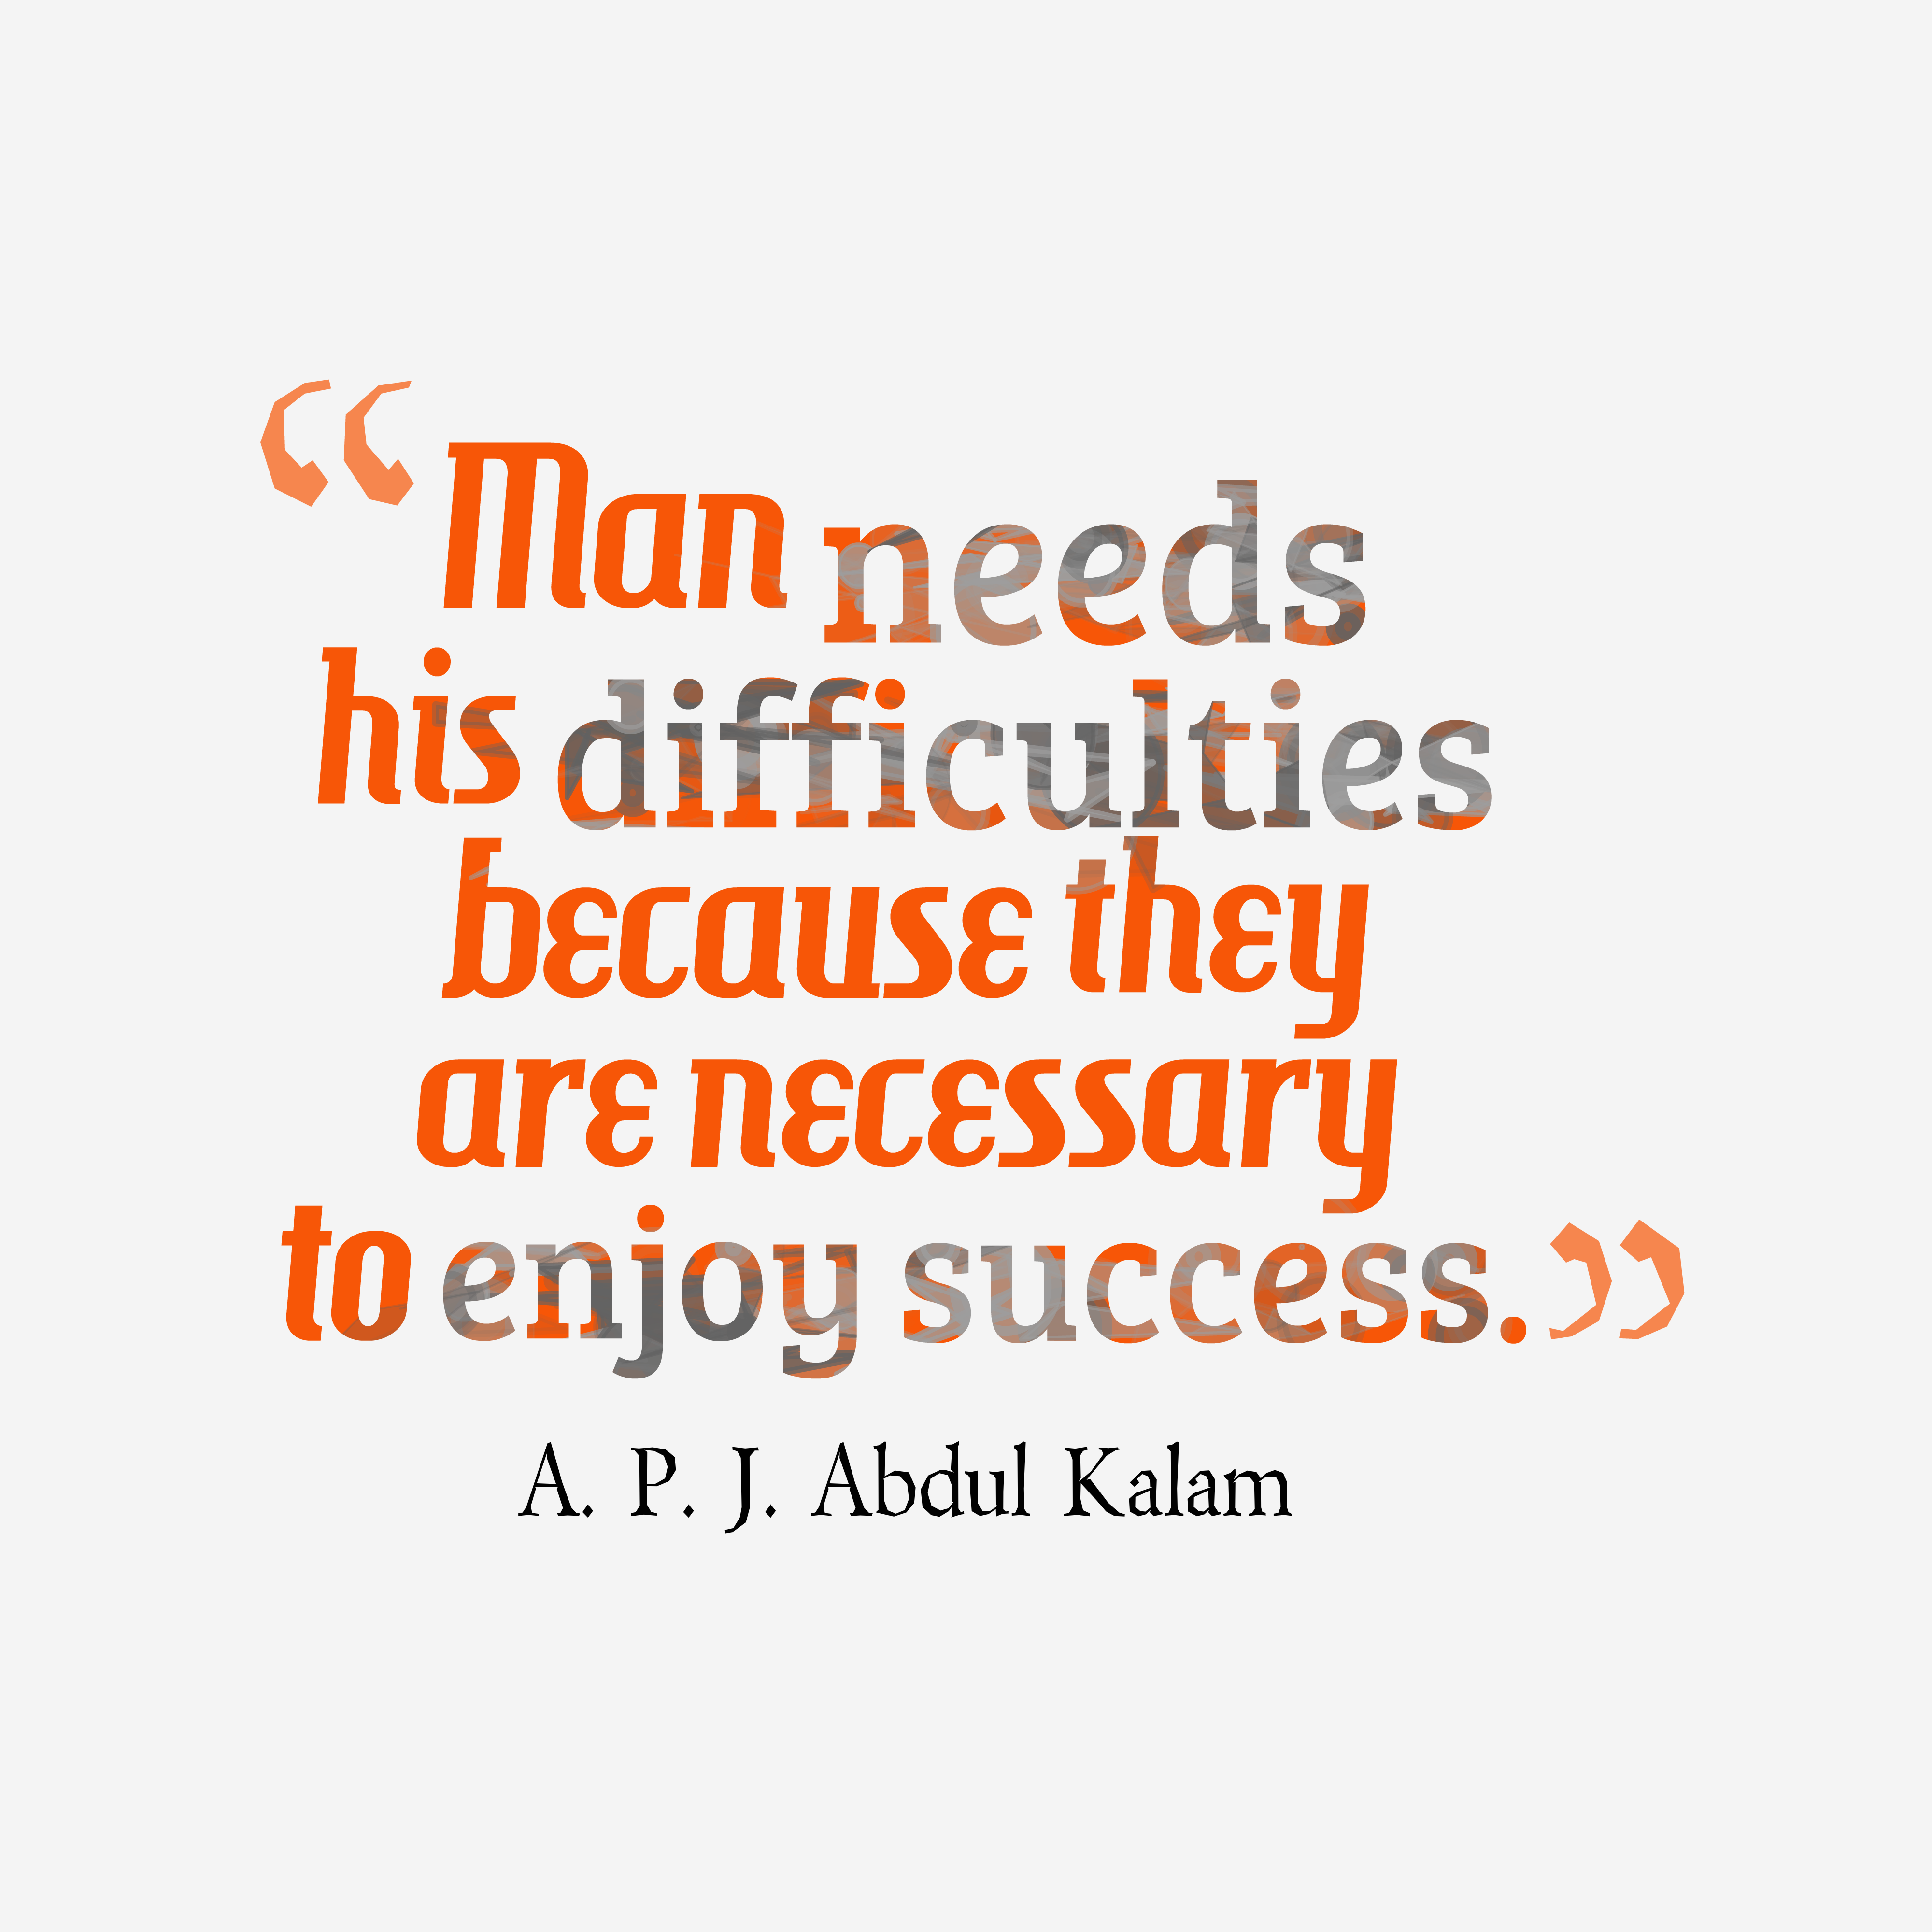 Quotes For Success | A P J Abdul Kalam Quote About Success